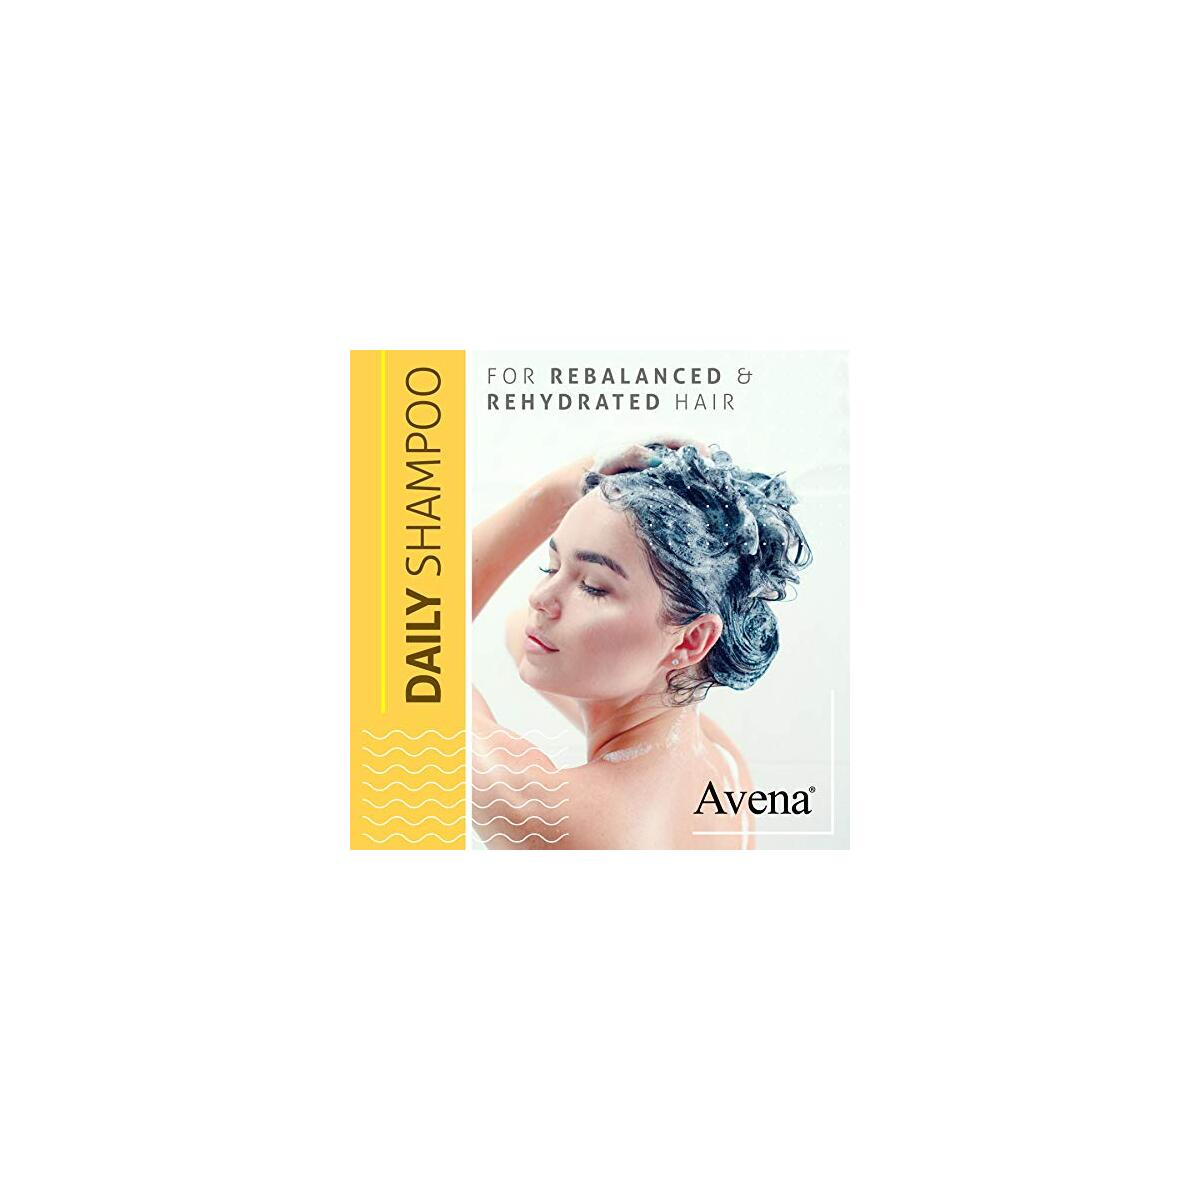 Avena Numero 1 Paraben-Free Shampoo for Colored or Chemically Treated Hair | Infused with Botanical Nourishing oils - Re-Store and Re-balance Natural Shine | Heat protectant | For All hair Types